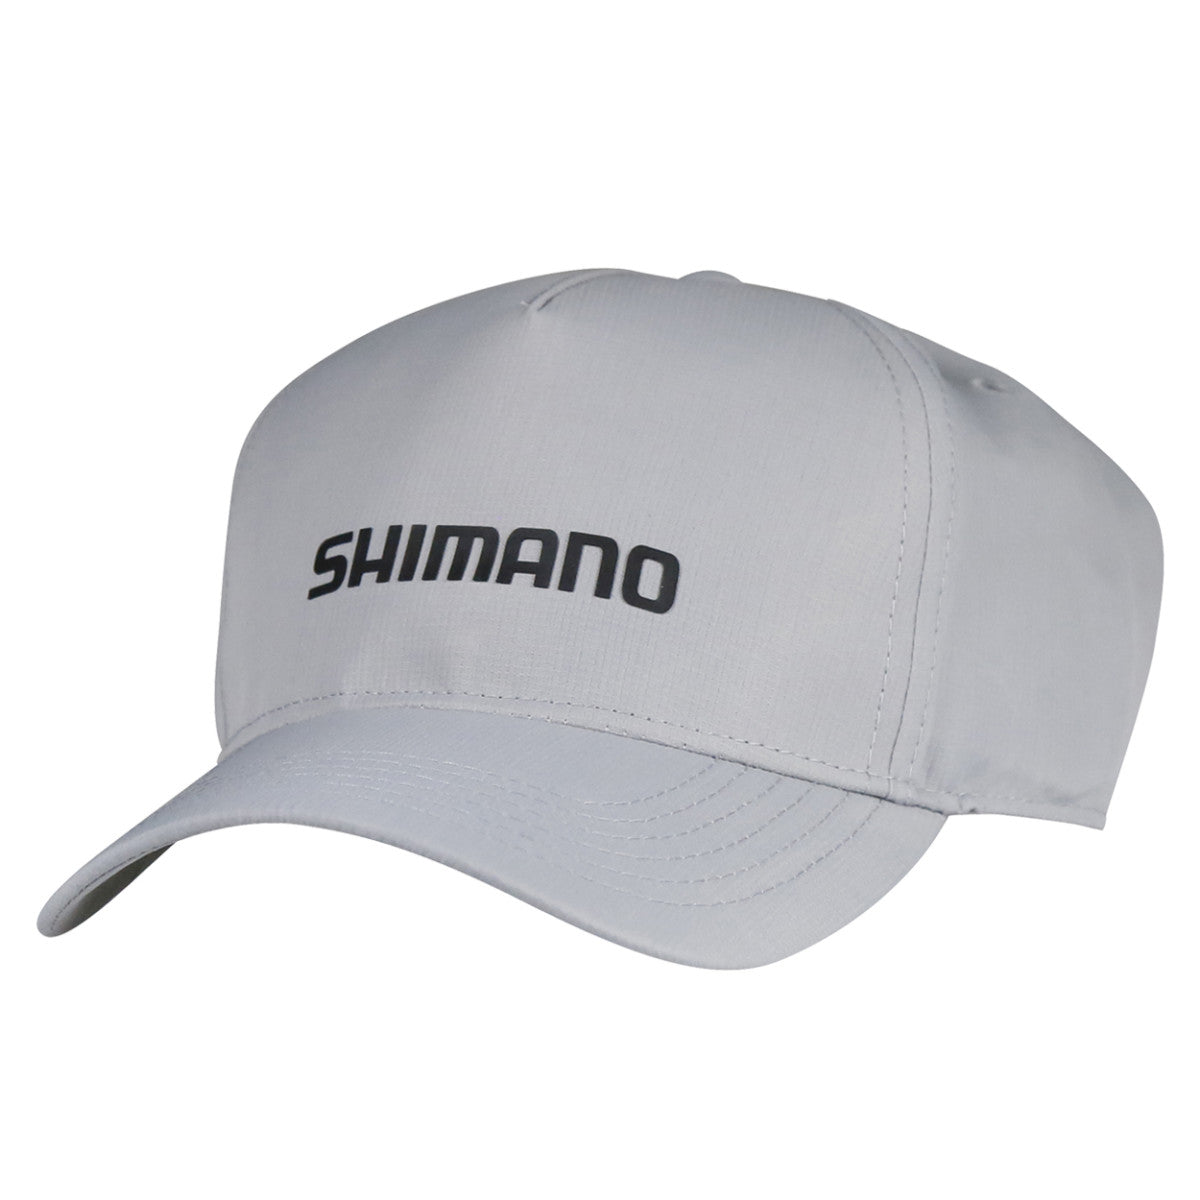 Shimano Corporate Pro Tour Cap - Grey